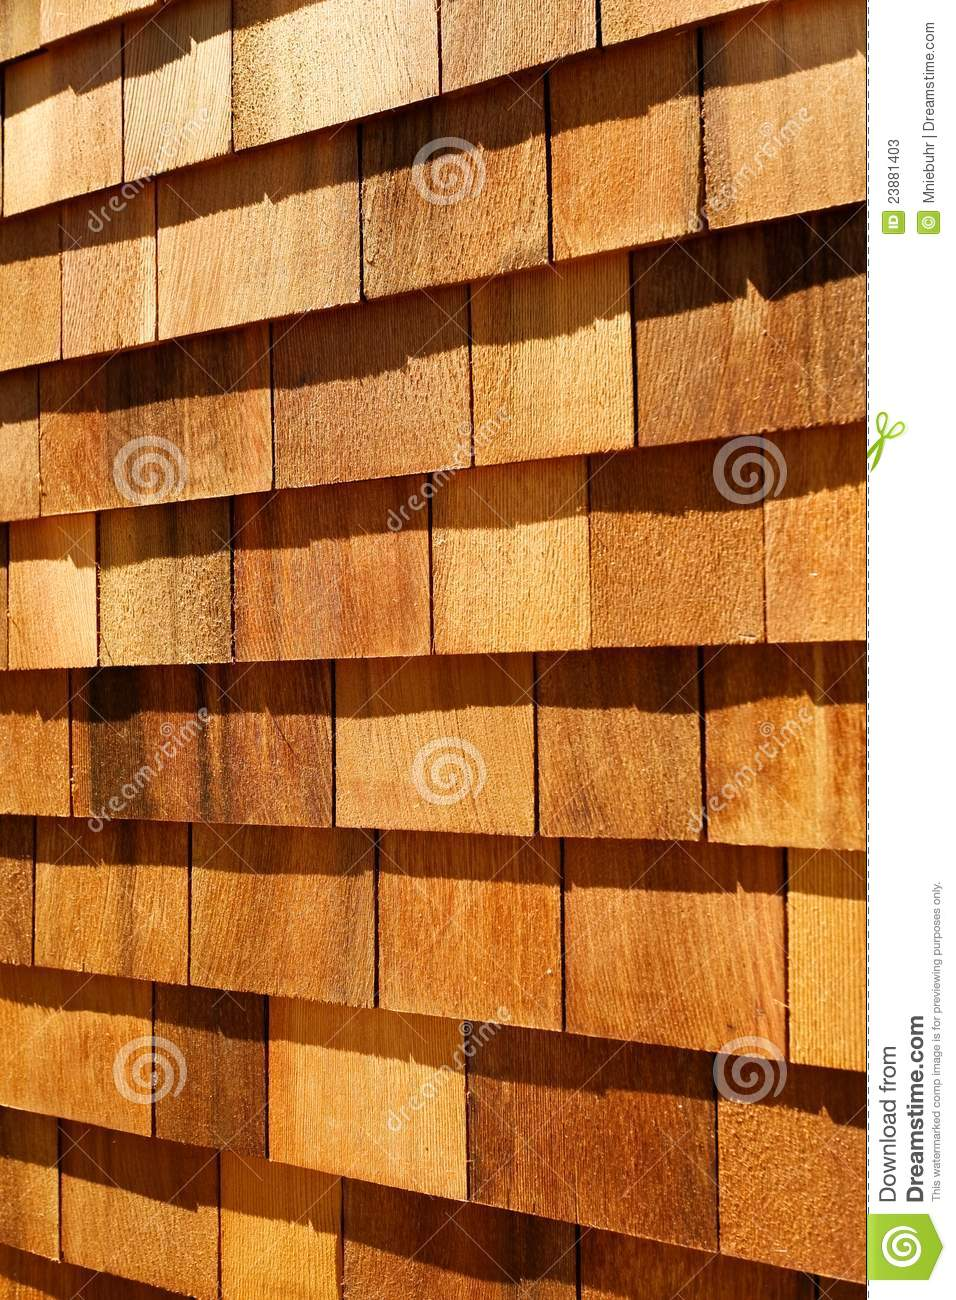 Western Red Cedar Wood Shingles Wall Siding Stock Image